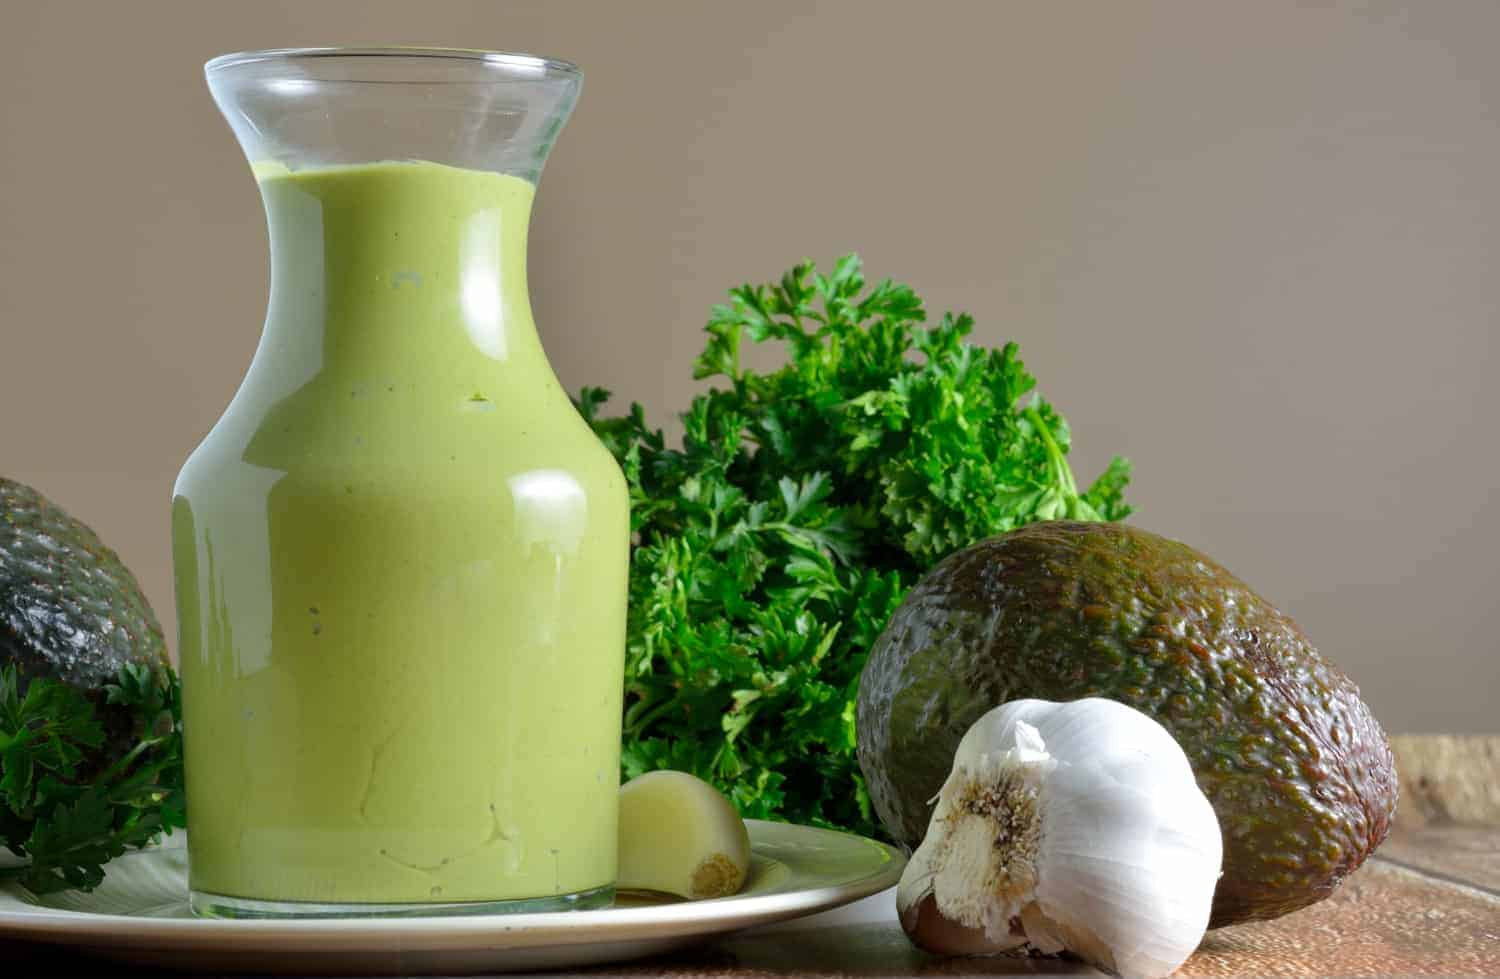 ... your Avocado Green Goddess Dressing stored in an salad dressing